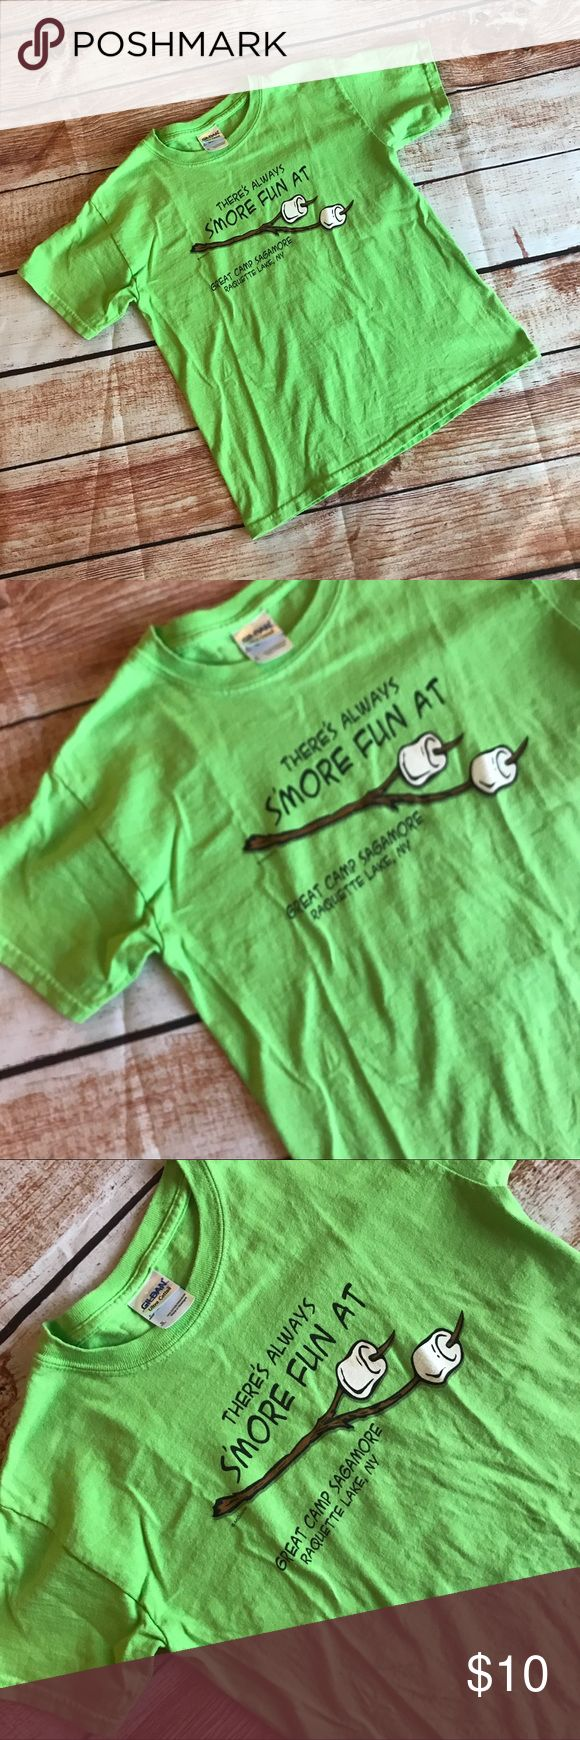 "▪️v i n t a g e : [youth] camp sagamore t-shirt v i n t a g e : bright green childs Camp Sagamore graphic tshirt. ""There's always s'more fun at great camp Sagamore lake, raquette lake, ny."" Very good condition. Maybe a slight fade from normal wash but pretty good for being a child tee (can also fit an adult ladies xsmall/small I am sure.. it fit me!). Size: youth small.   ——- #bogo #freeship #sale #clearance #gift #present #Vintage #vtg #retro #bright #neon #green #camp #sagamore…"